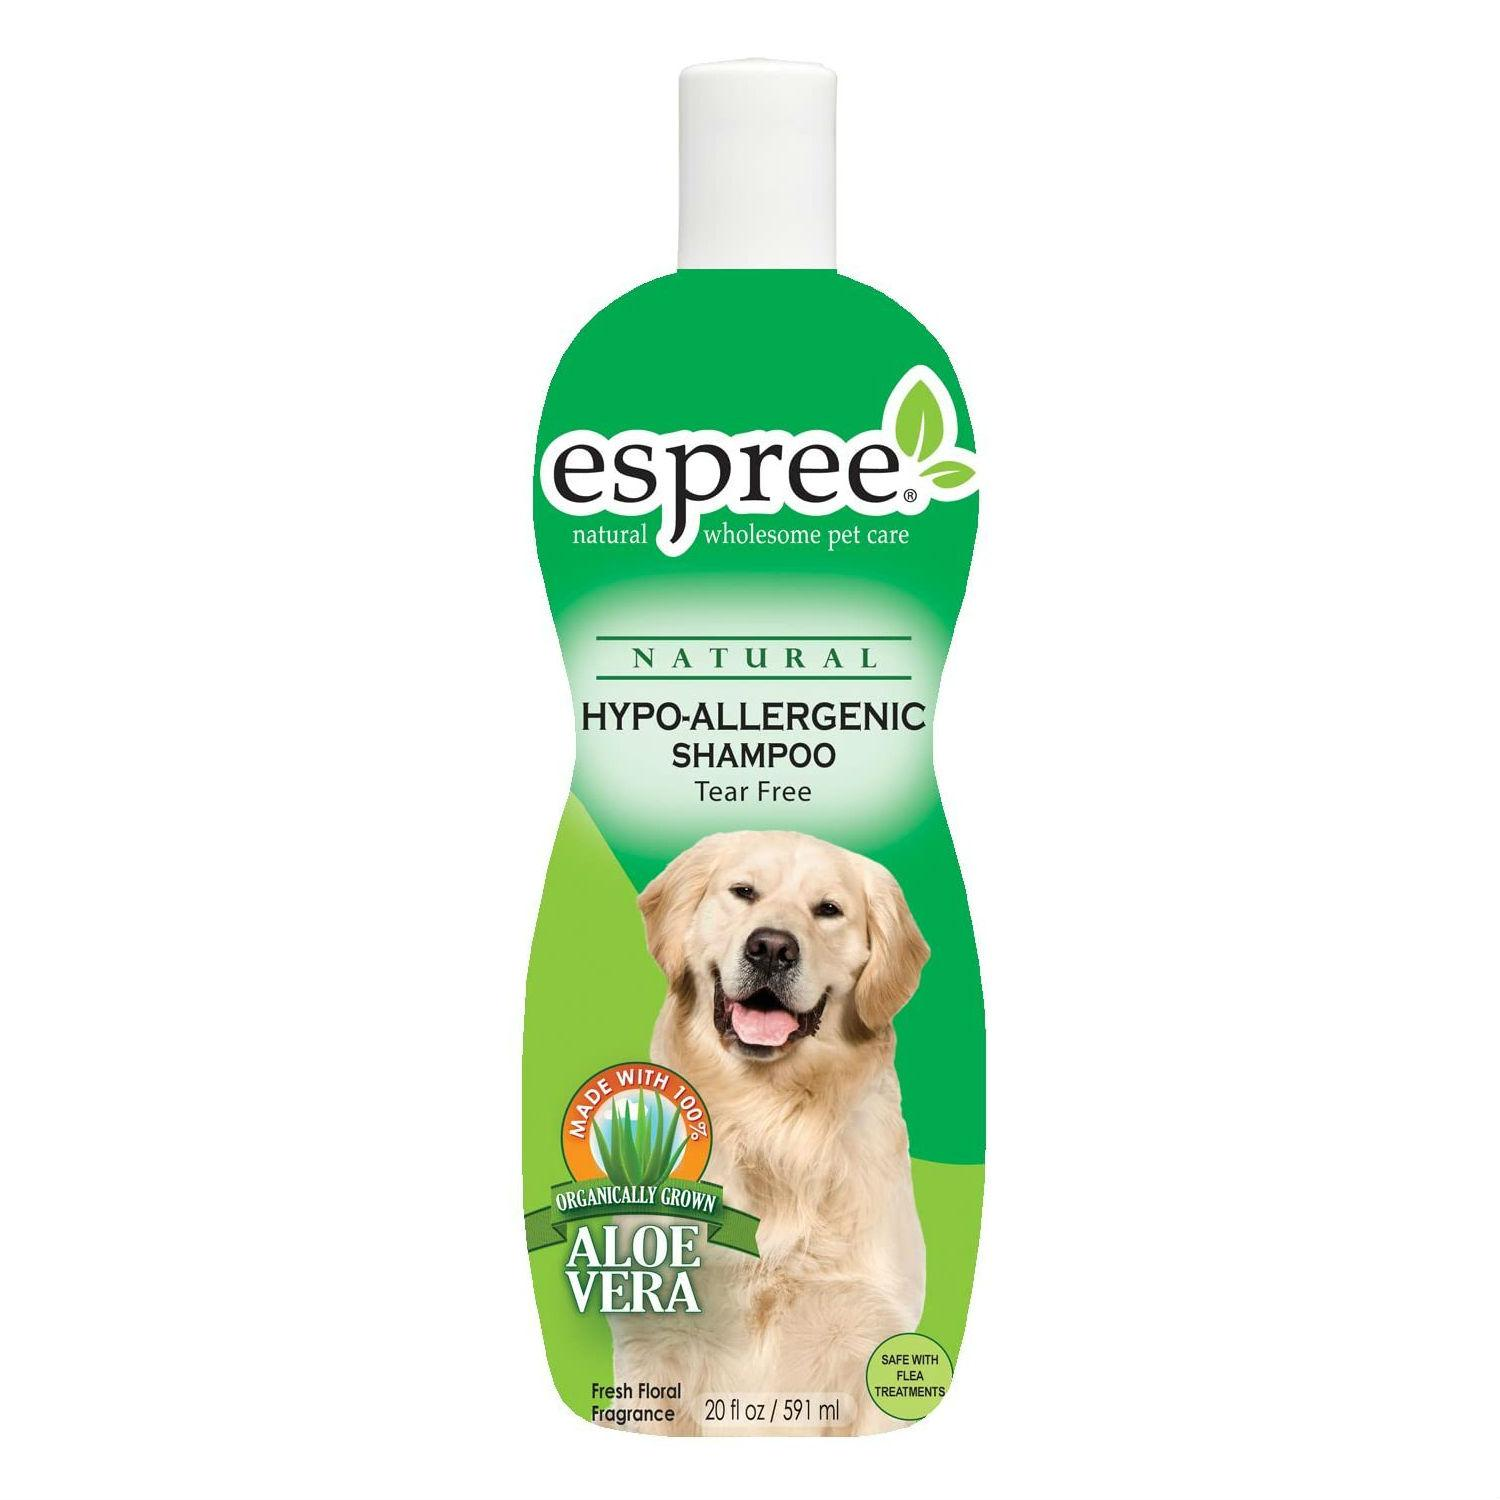 Espree Hypo-Allergenic Shampoo for Dogs and Cats